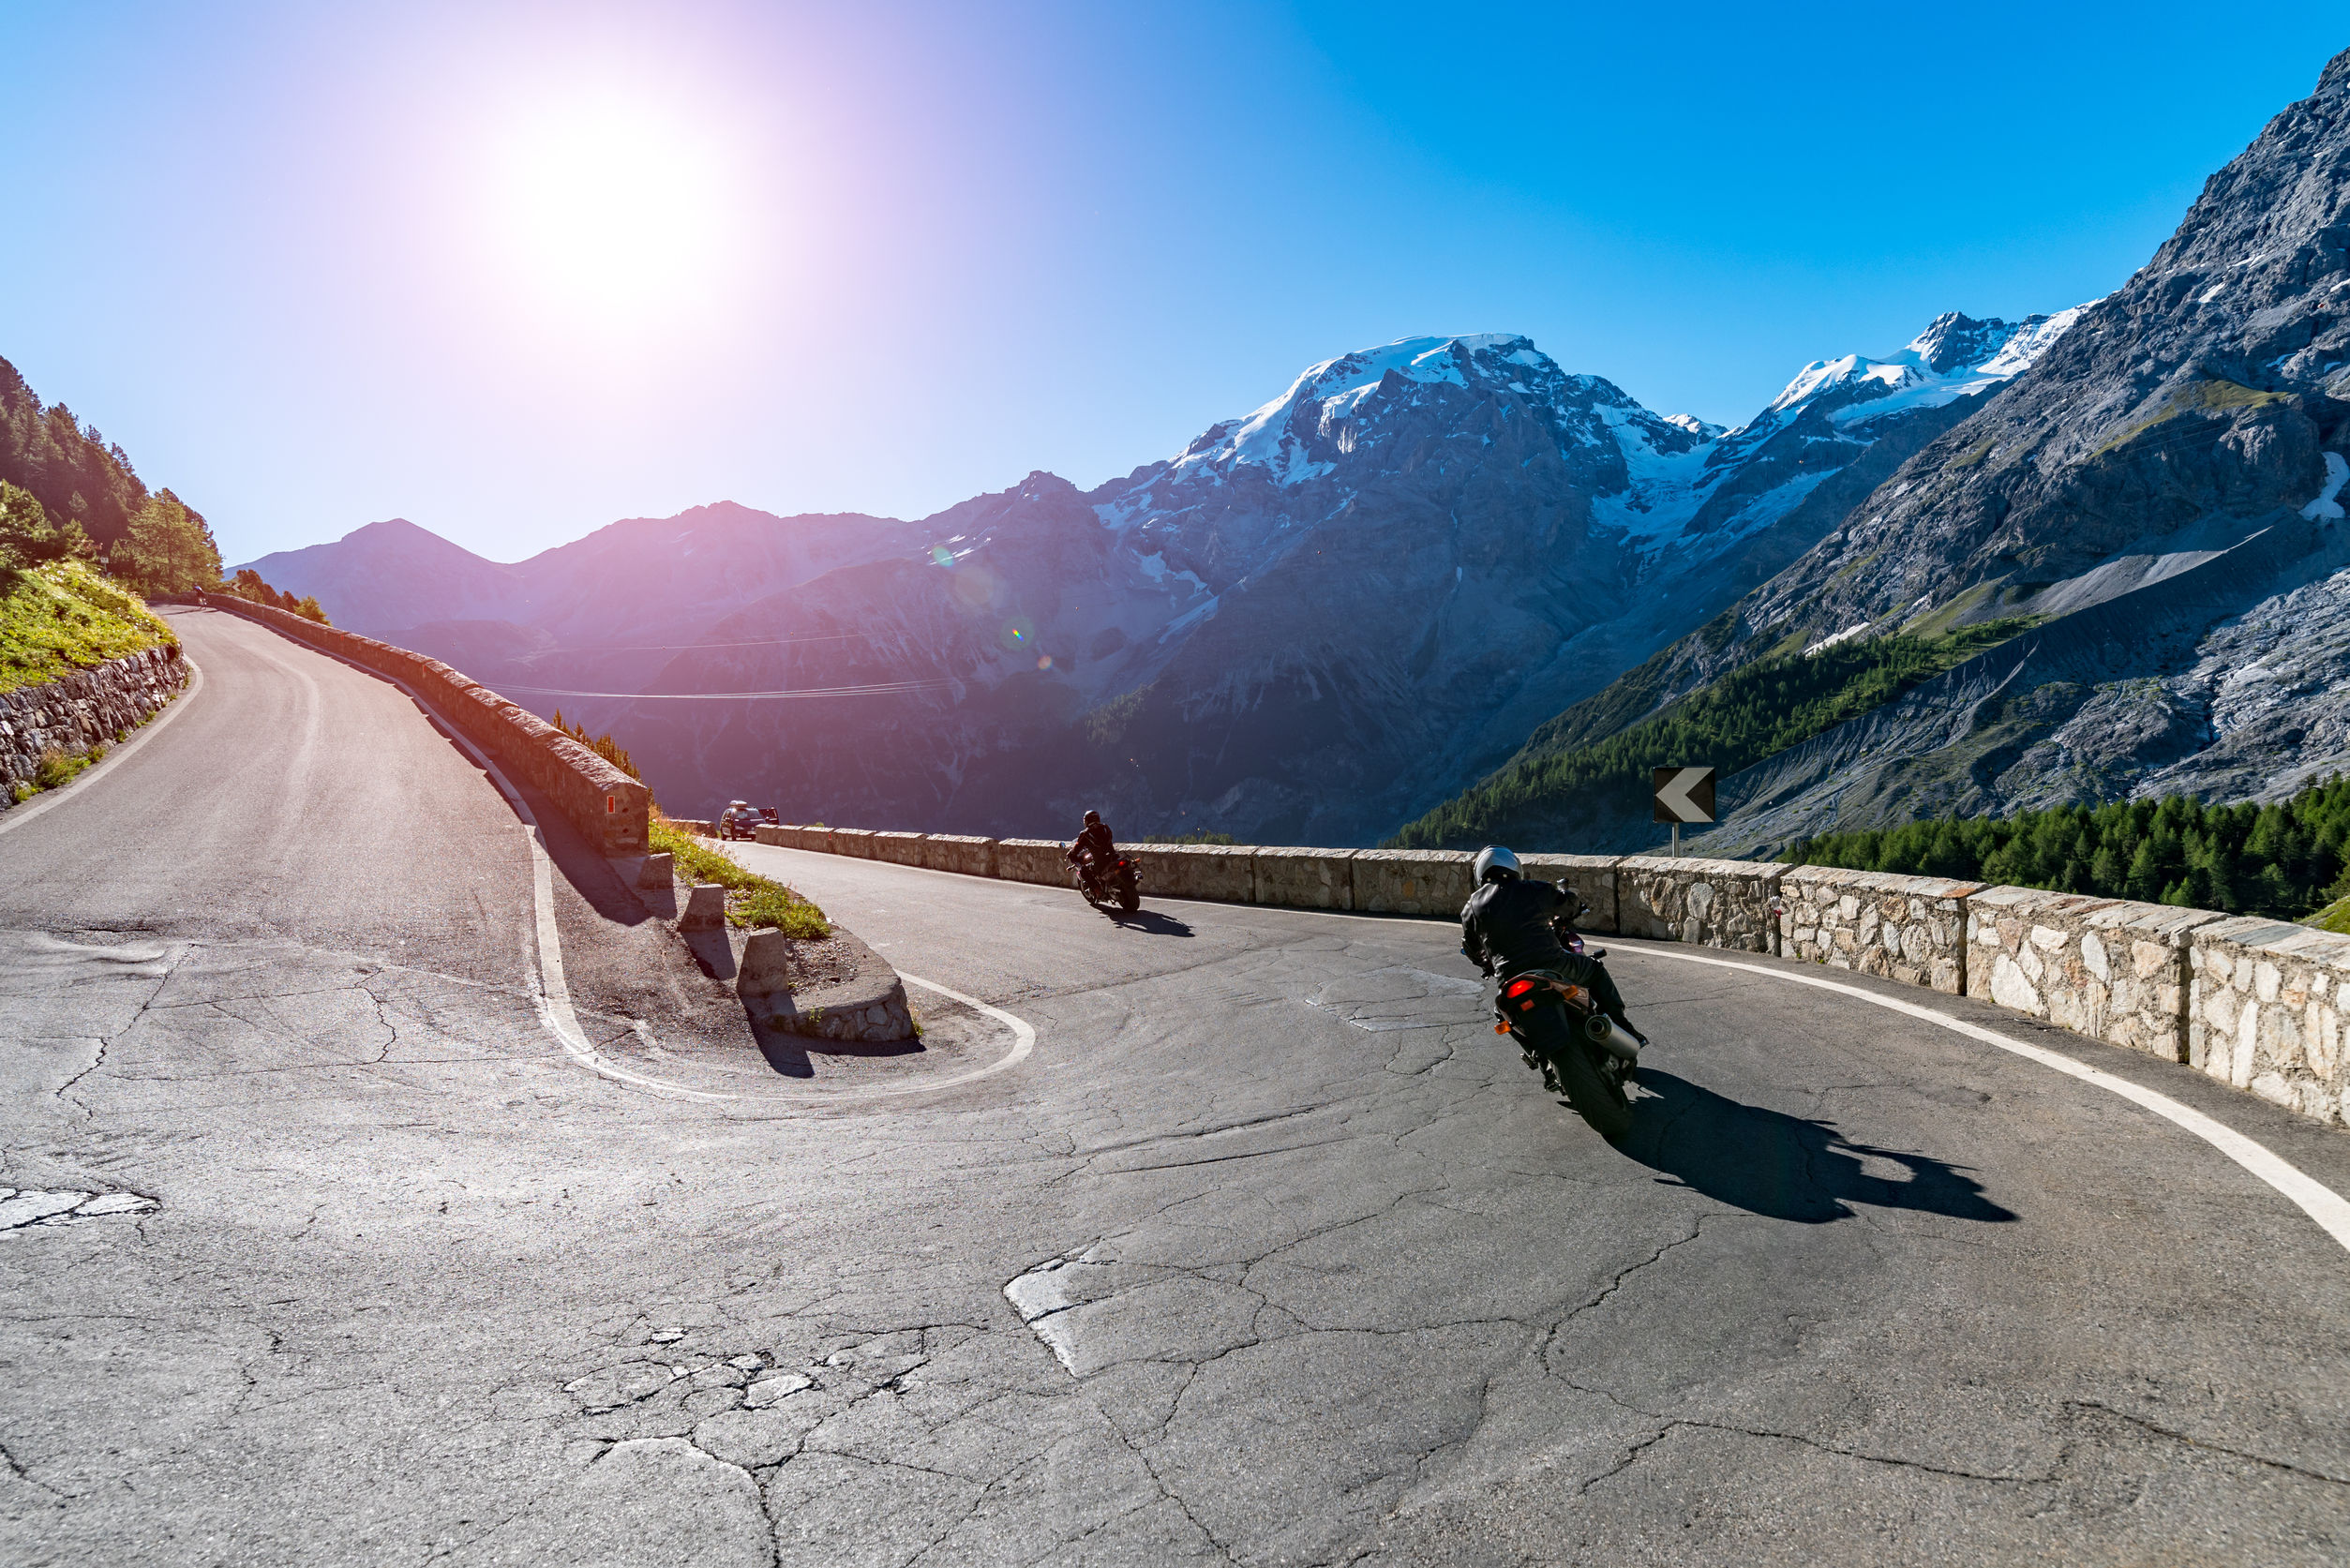 64630927 - beautiful sunset above the motorbike on the famous road in mountains alps passo stelvio